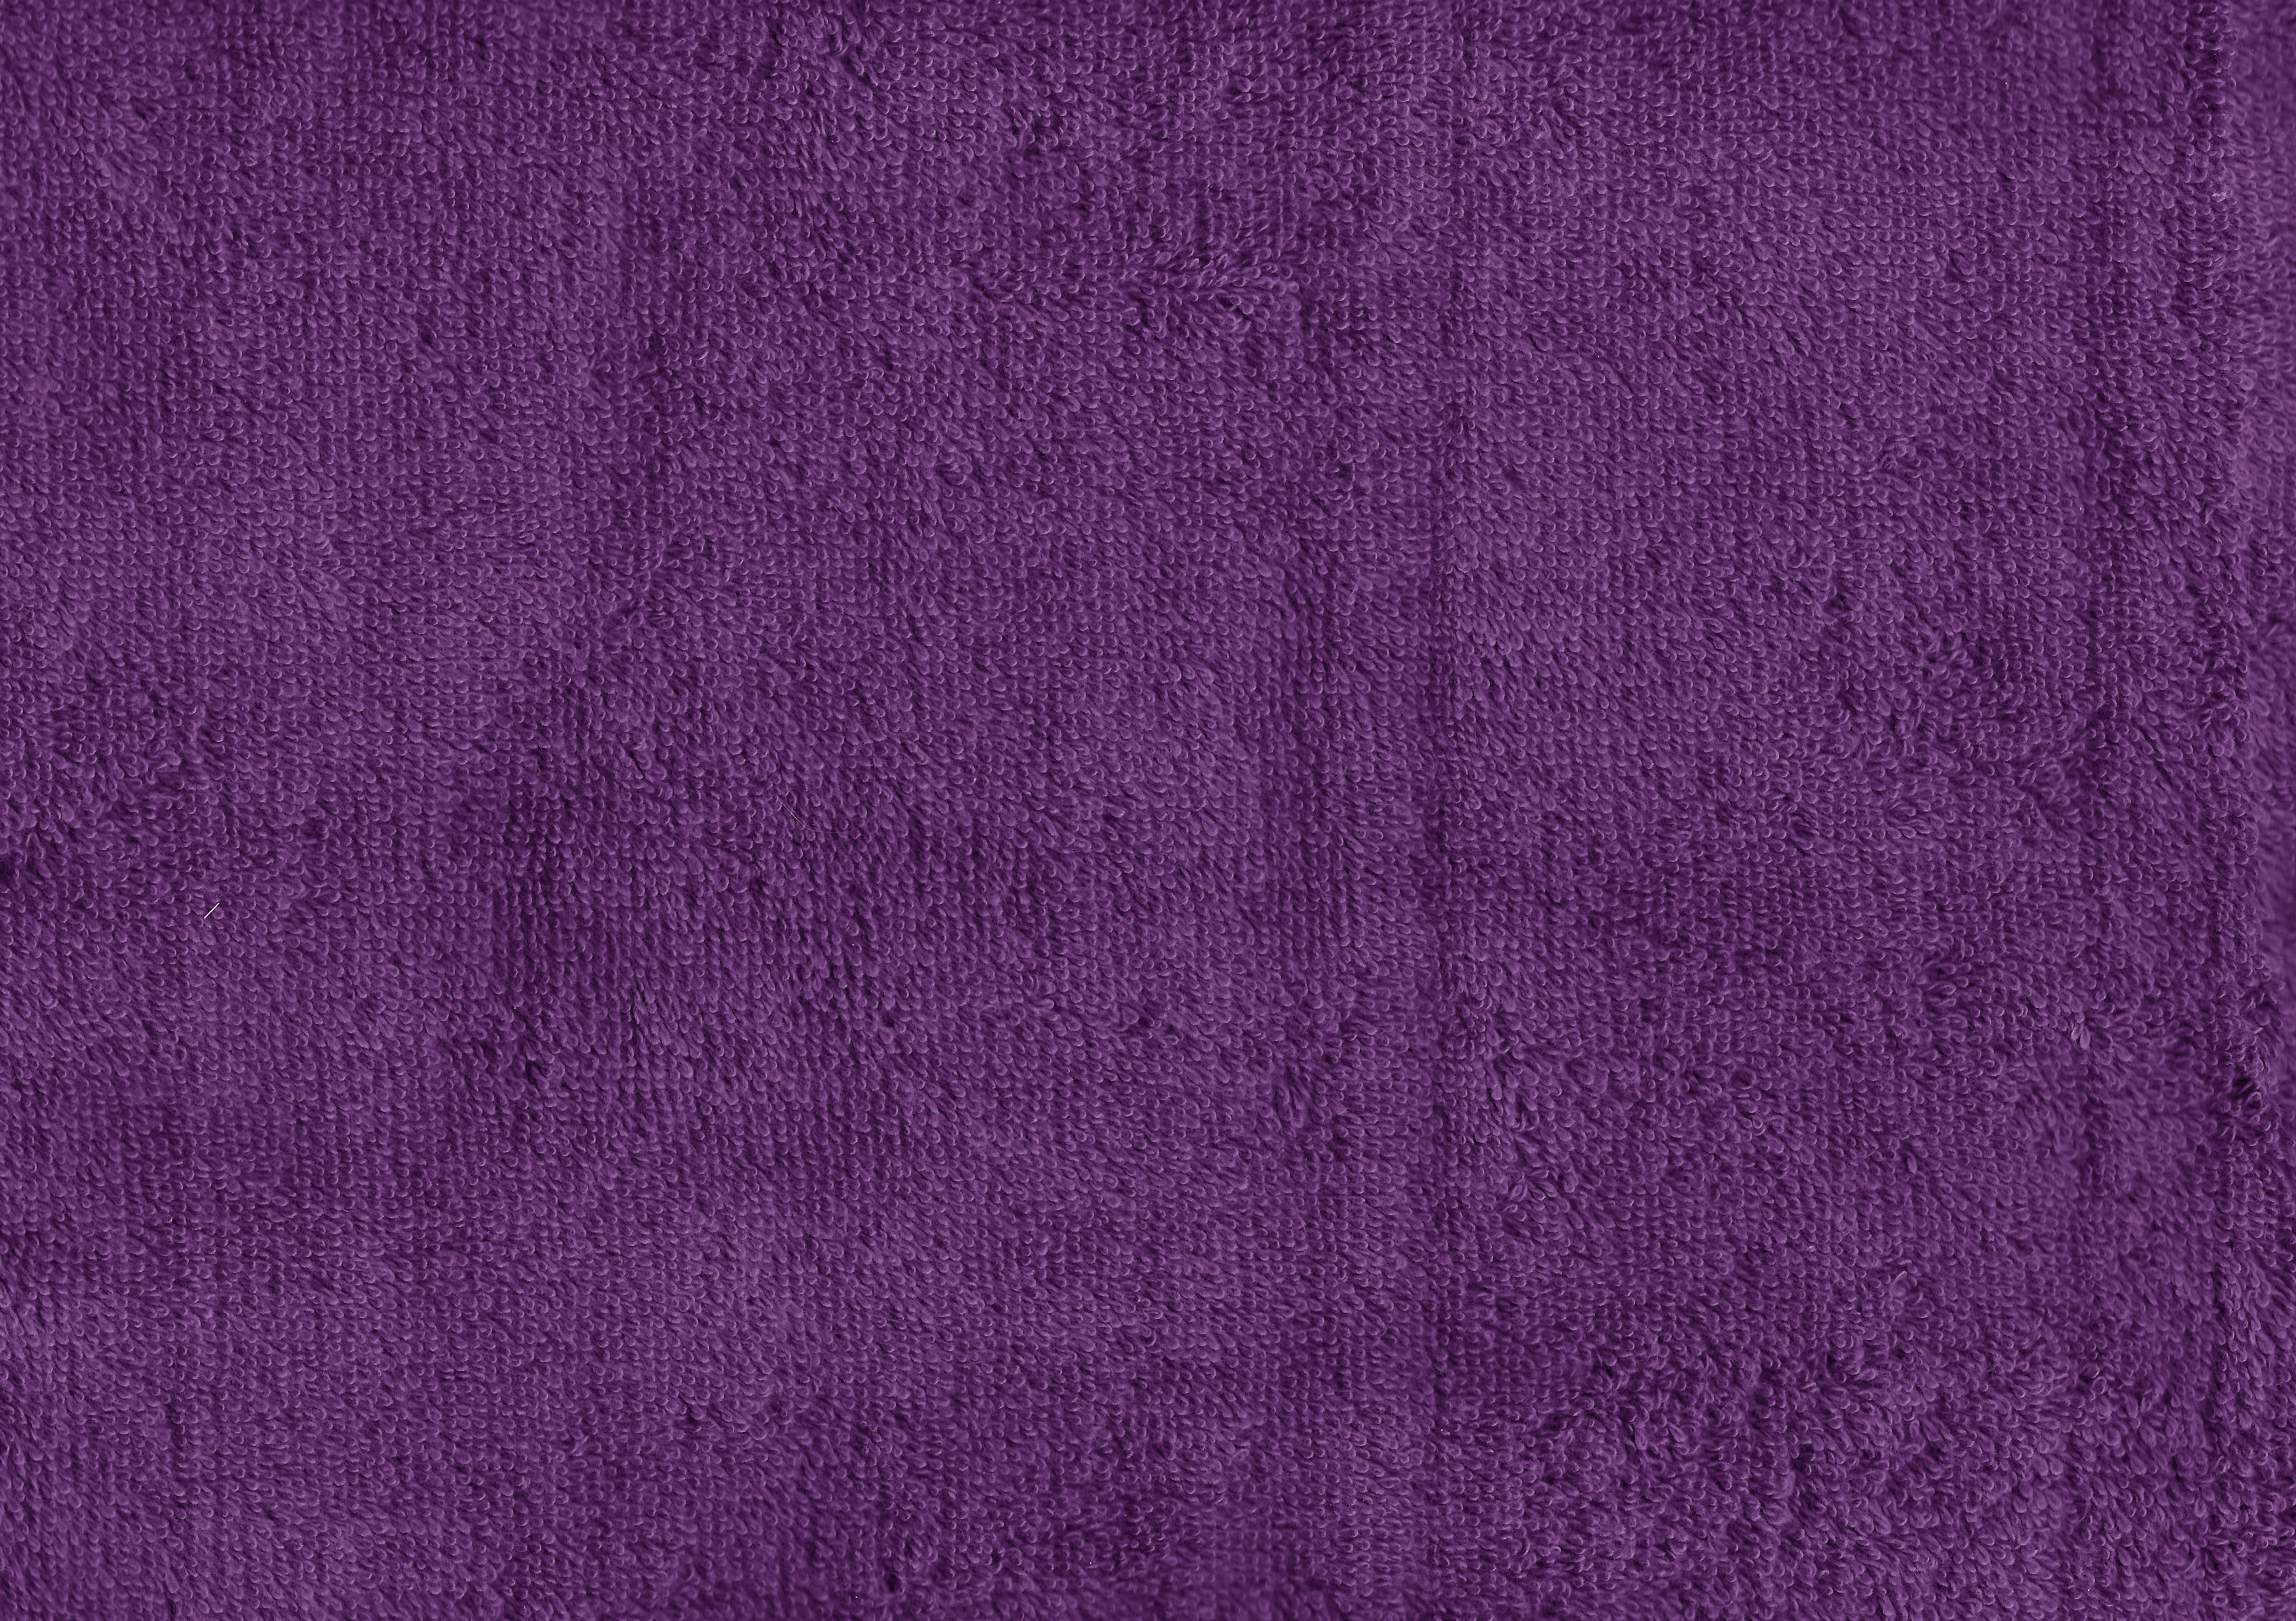 Purple Terry Cloth Towel Texture Picture Free Photograph